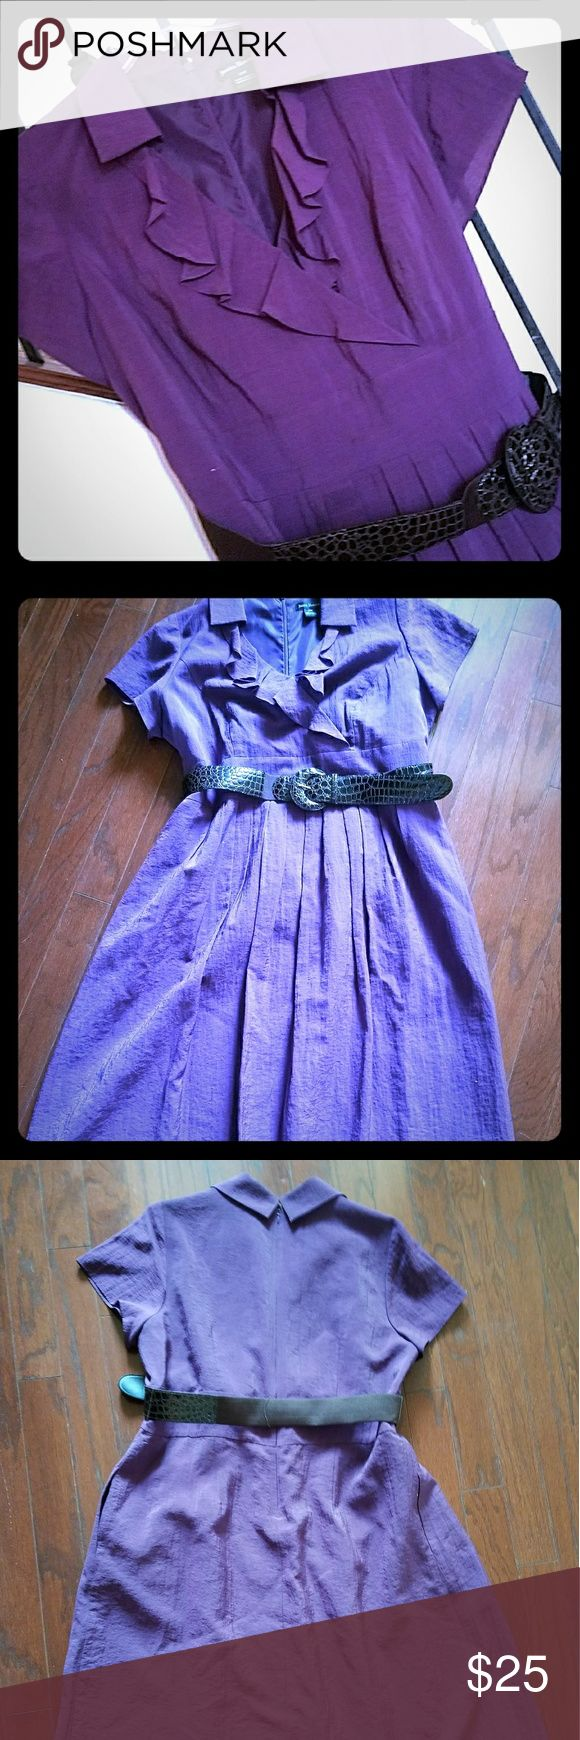 🎈🎁🎂SALE Jessica Howard Purple  Dress V neck with ruffled lapel, flared , lined skirt. with  2 deep pockets,  wide  belt. Hits just below the knee (5'6). This dress is a beautiful light purple which is FABuLOUS against any complexion💜l💄 dark Plum lipstick💋& black, strappy sandals 👢& a multicolored envelope clutch. 🌟This dress will be the highlight of the evening.❣❣❣👌😉💖  #Romantic #Purple #Frills ⚘ Jessica Howard Dresses Midi